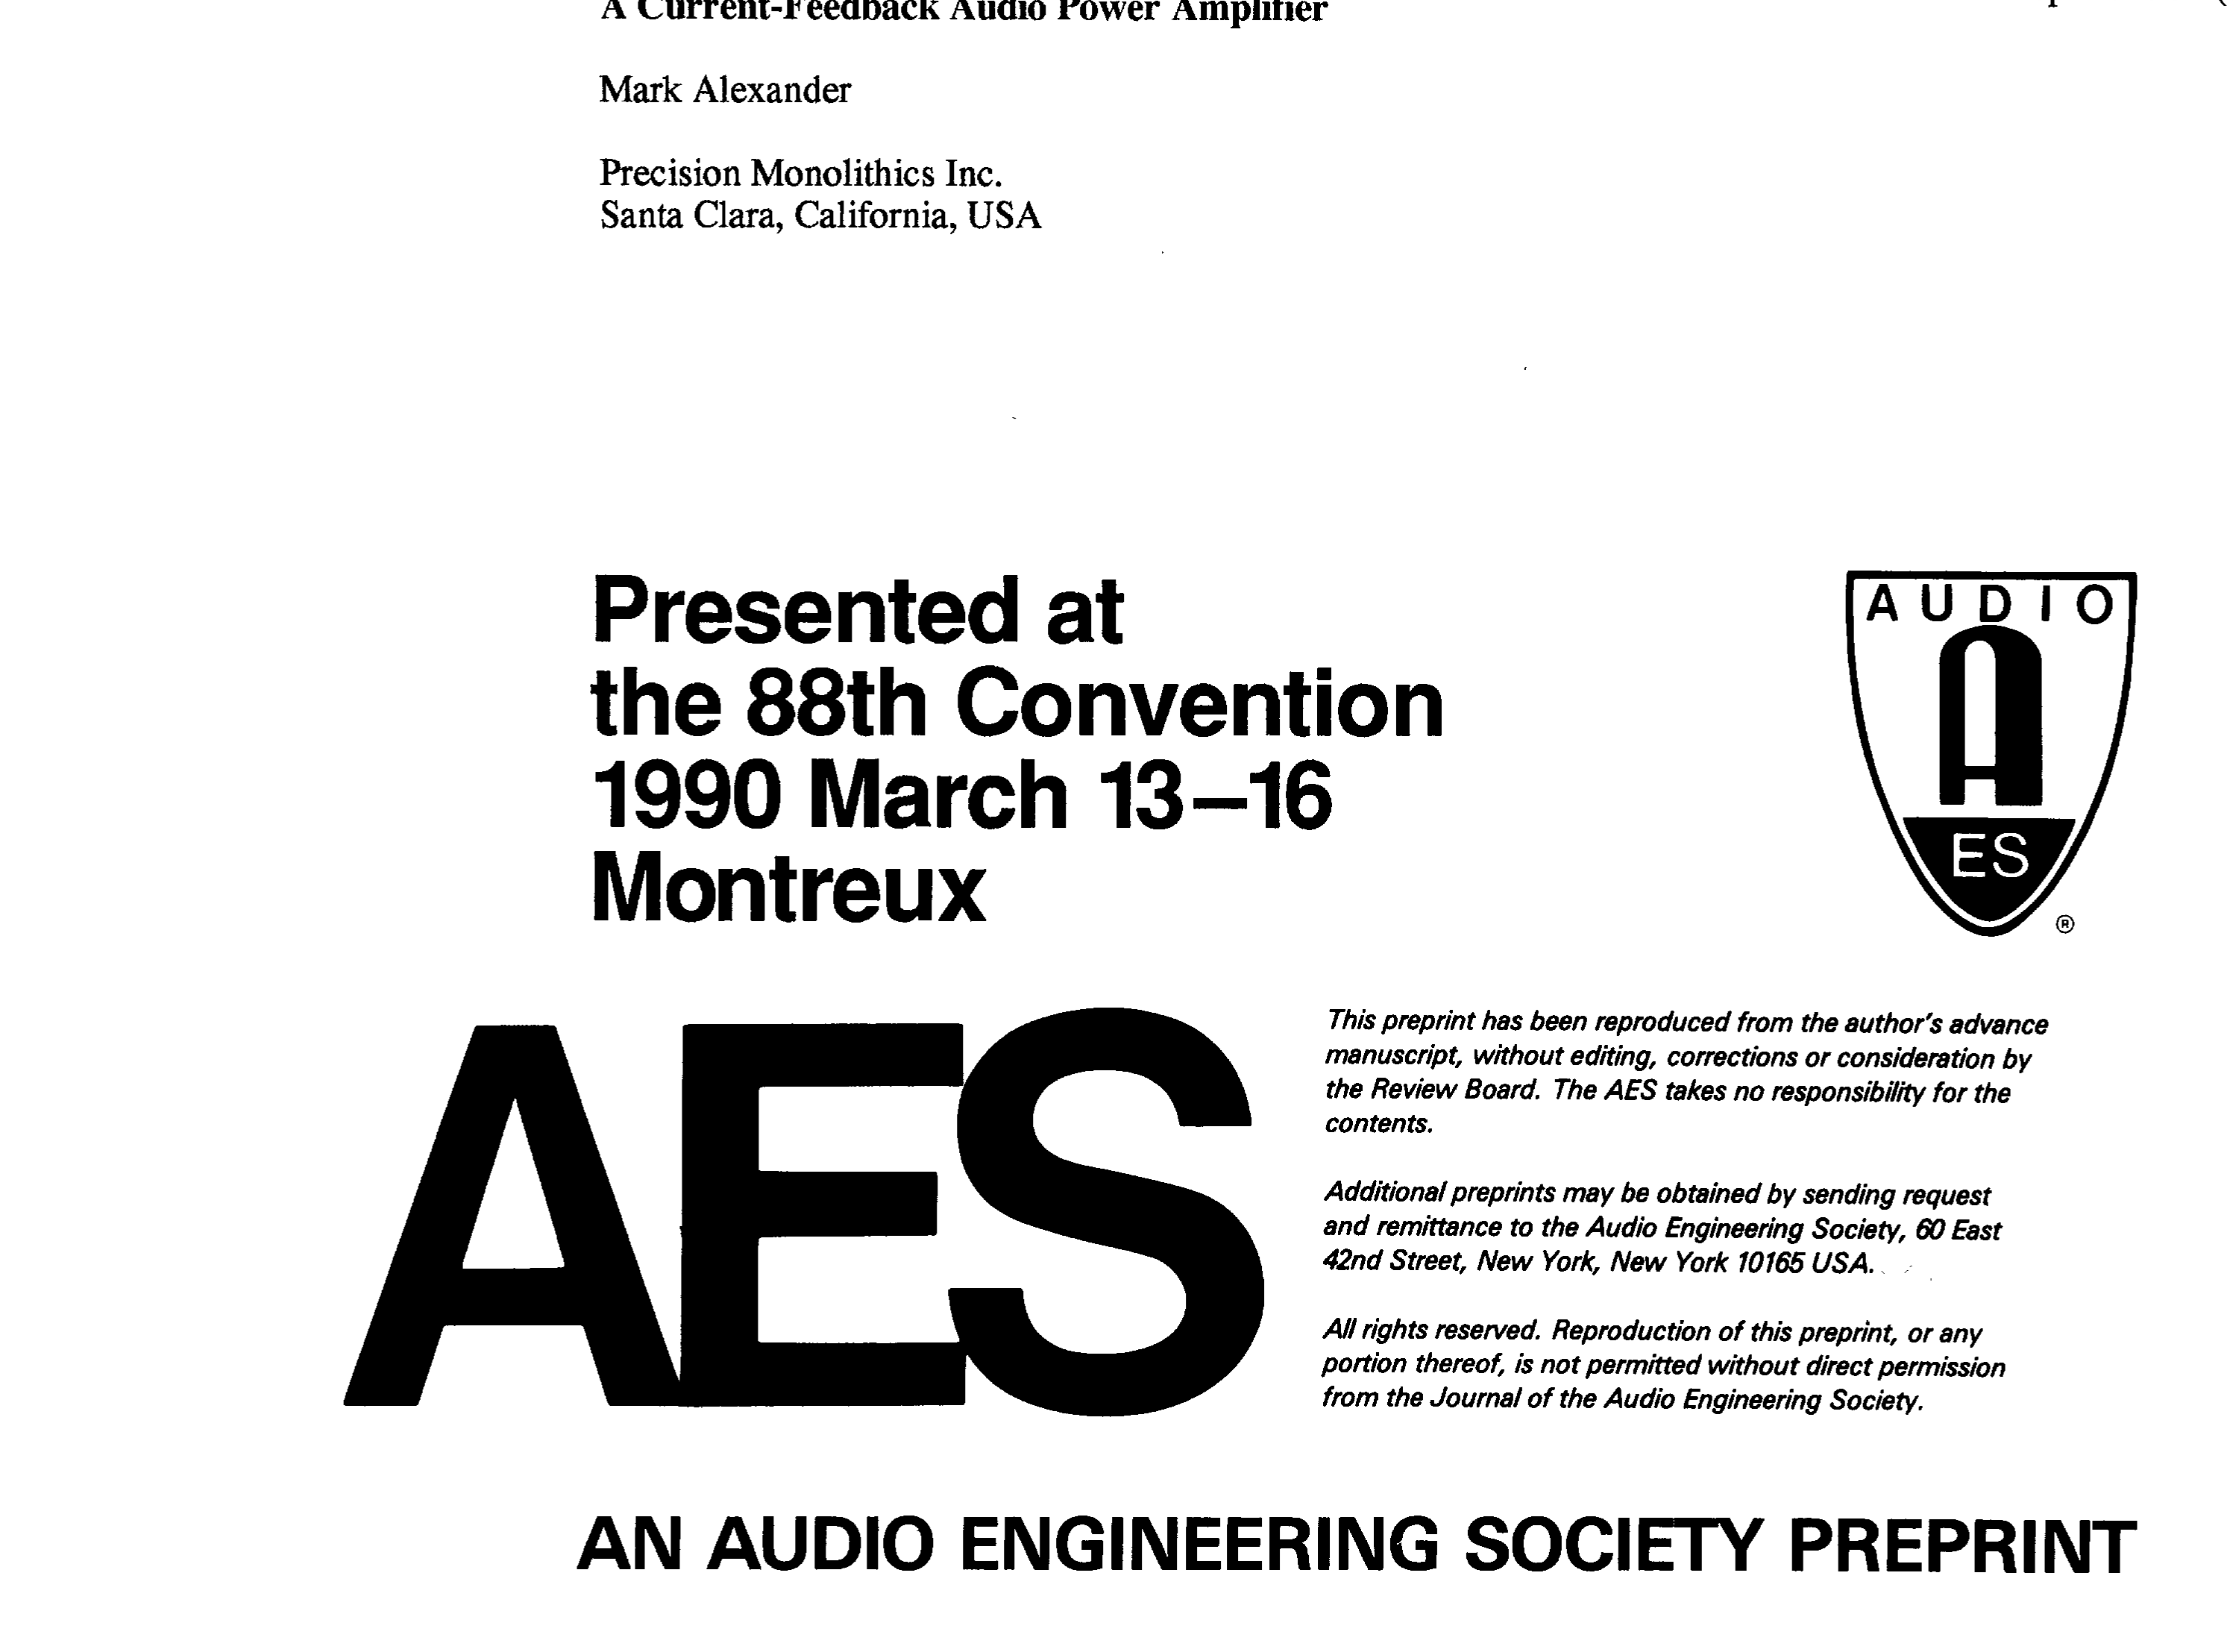 Aes E Library A Current Feedback Audio Power Amplifier 60w Transistored Circuit